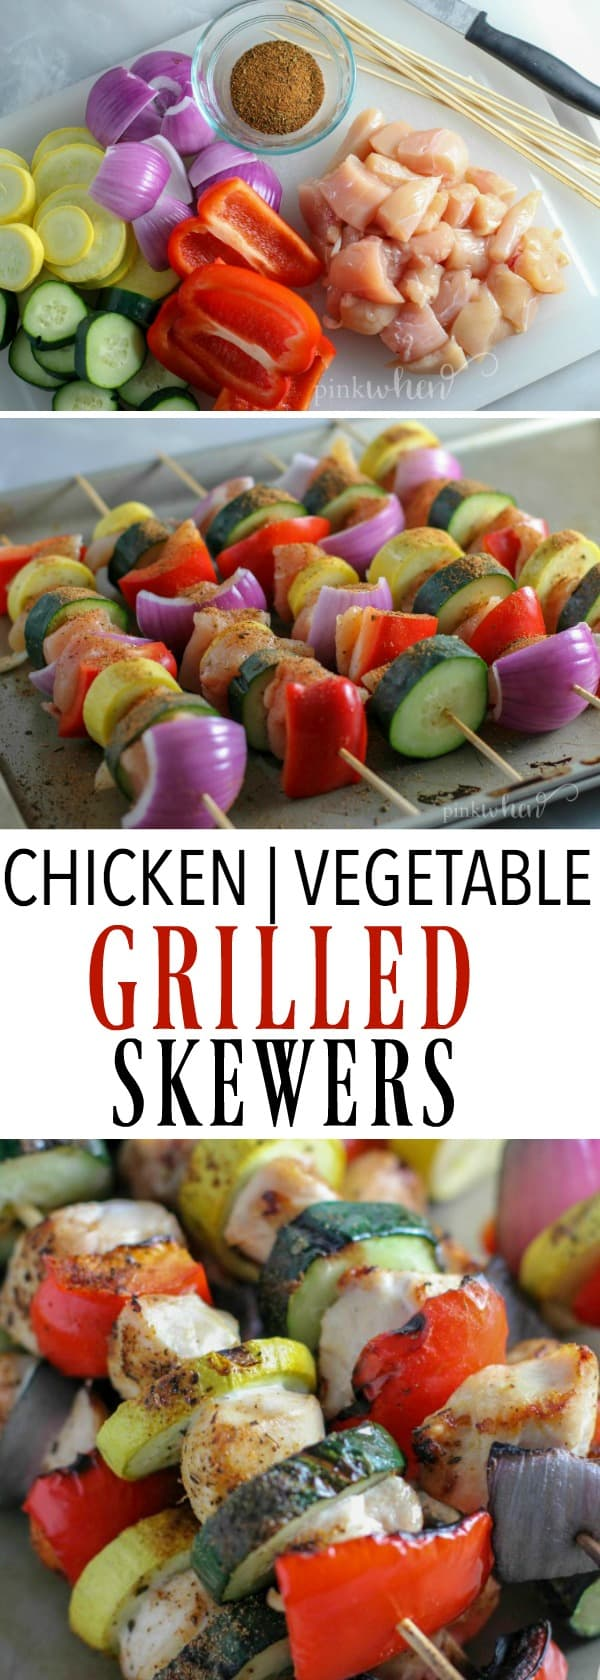 Best Grilled Chicken Recipes - Easy Grilled Chicken Skewers #masteryoursummer #grilledchicken #grilledchickenskewers #easygrilledchicken